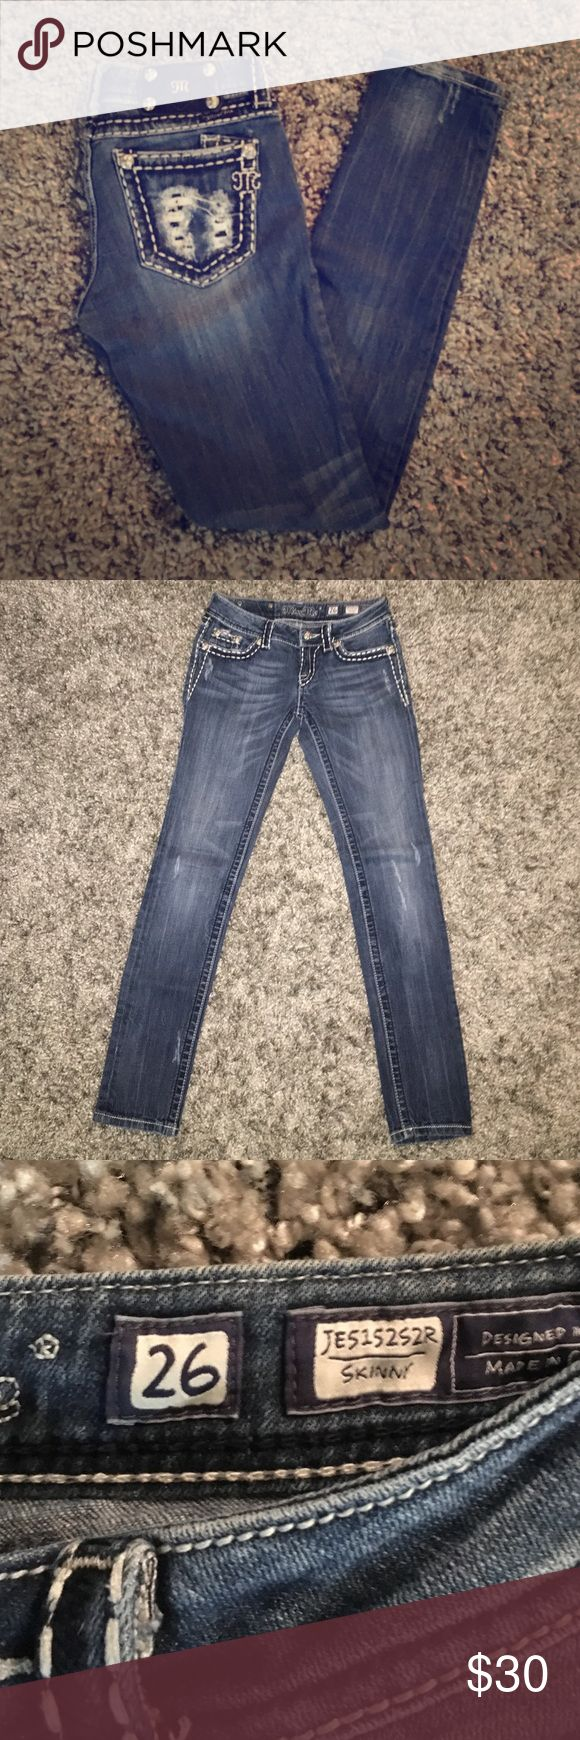 MissMe Skinny Jeans! Size 26. Inseam 31. Lightly worn, great condition. White stitching with destruction pocket detail! Purchased at the Buckle store. Miss Me Jeans Skinny